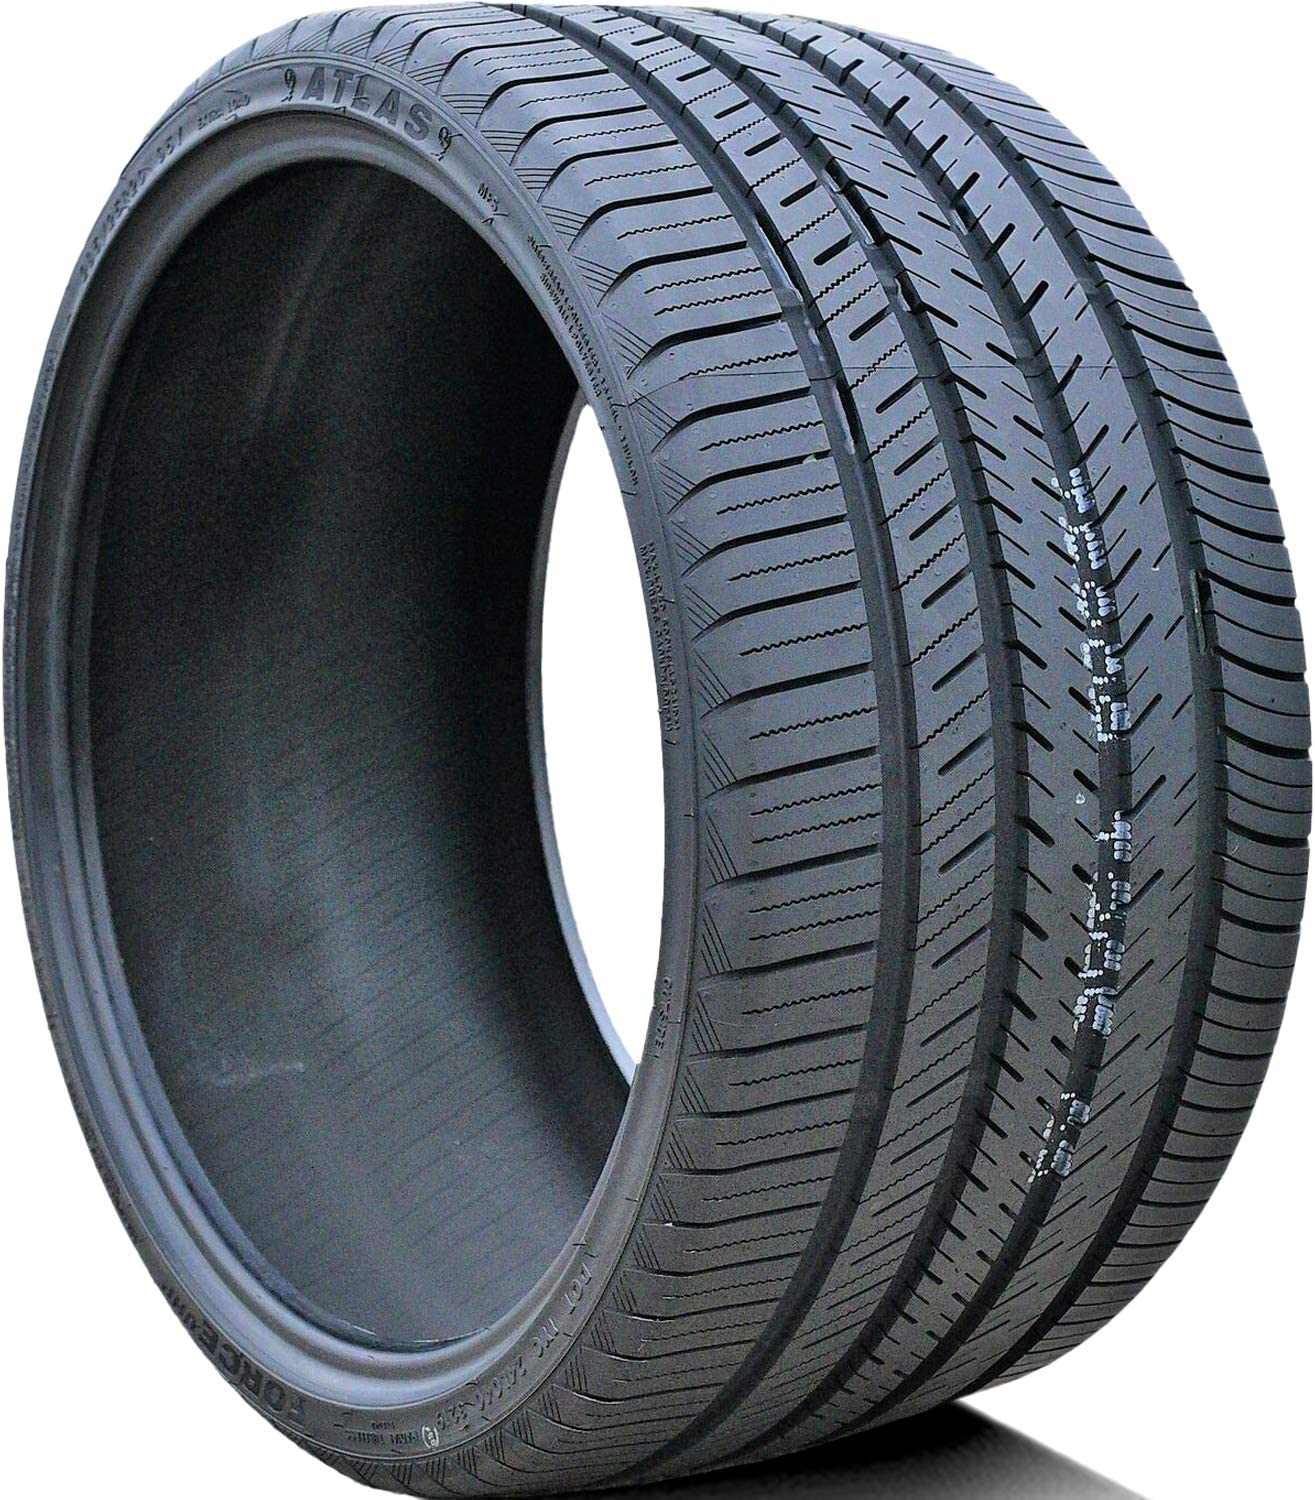 Atlas Tire Force UHP High Performance All-Season Radial Tires-225//35R18 87W XL Set of 4 FOUR